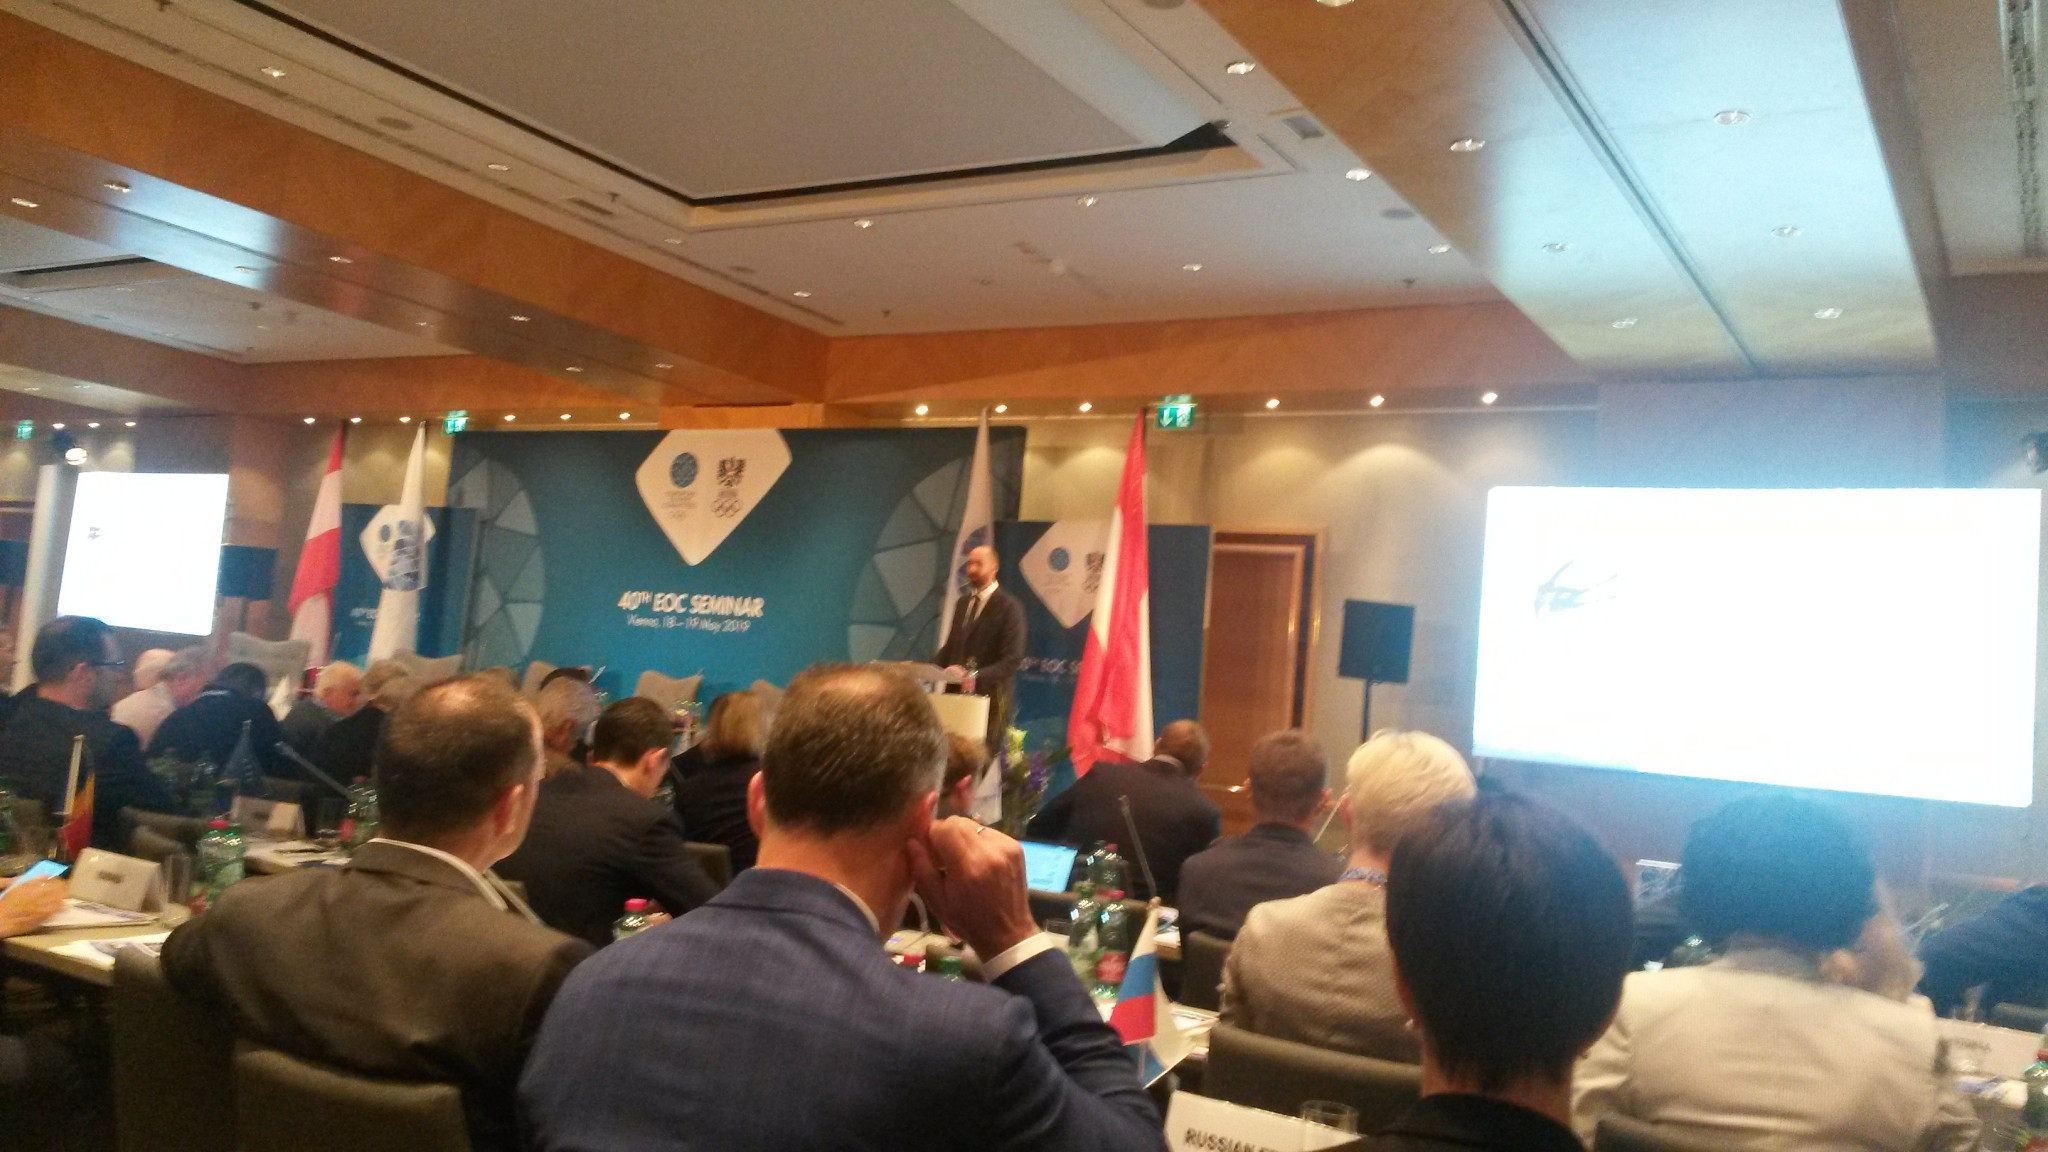 James Macleod, IOC Director NOC Relations Department and Olympic Solidarity, addresses delegates at the 40th EOC Seminar in Vienna this morning ©ITG